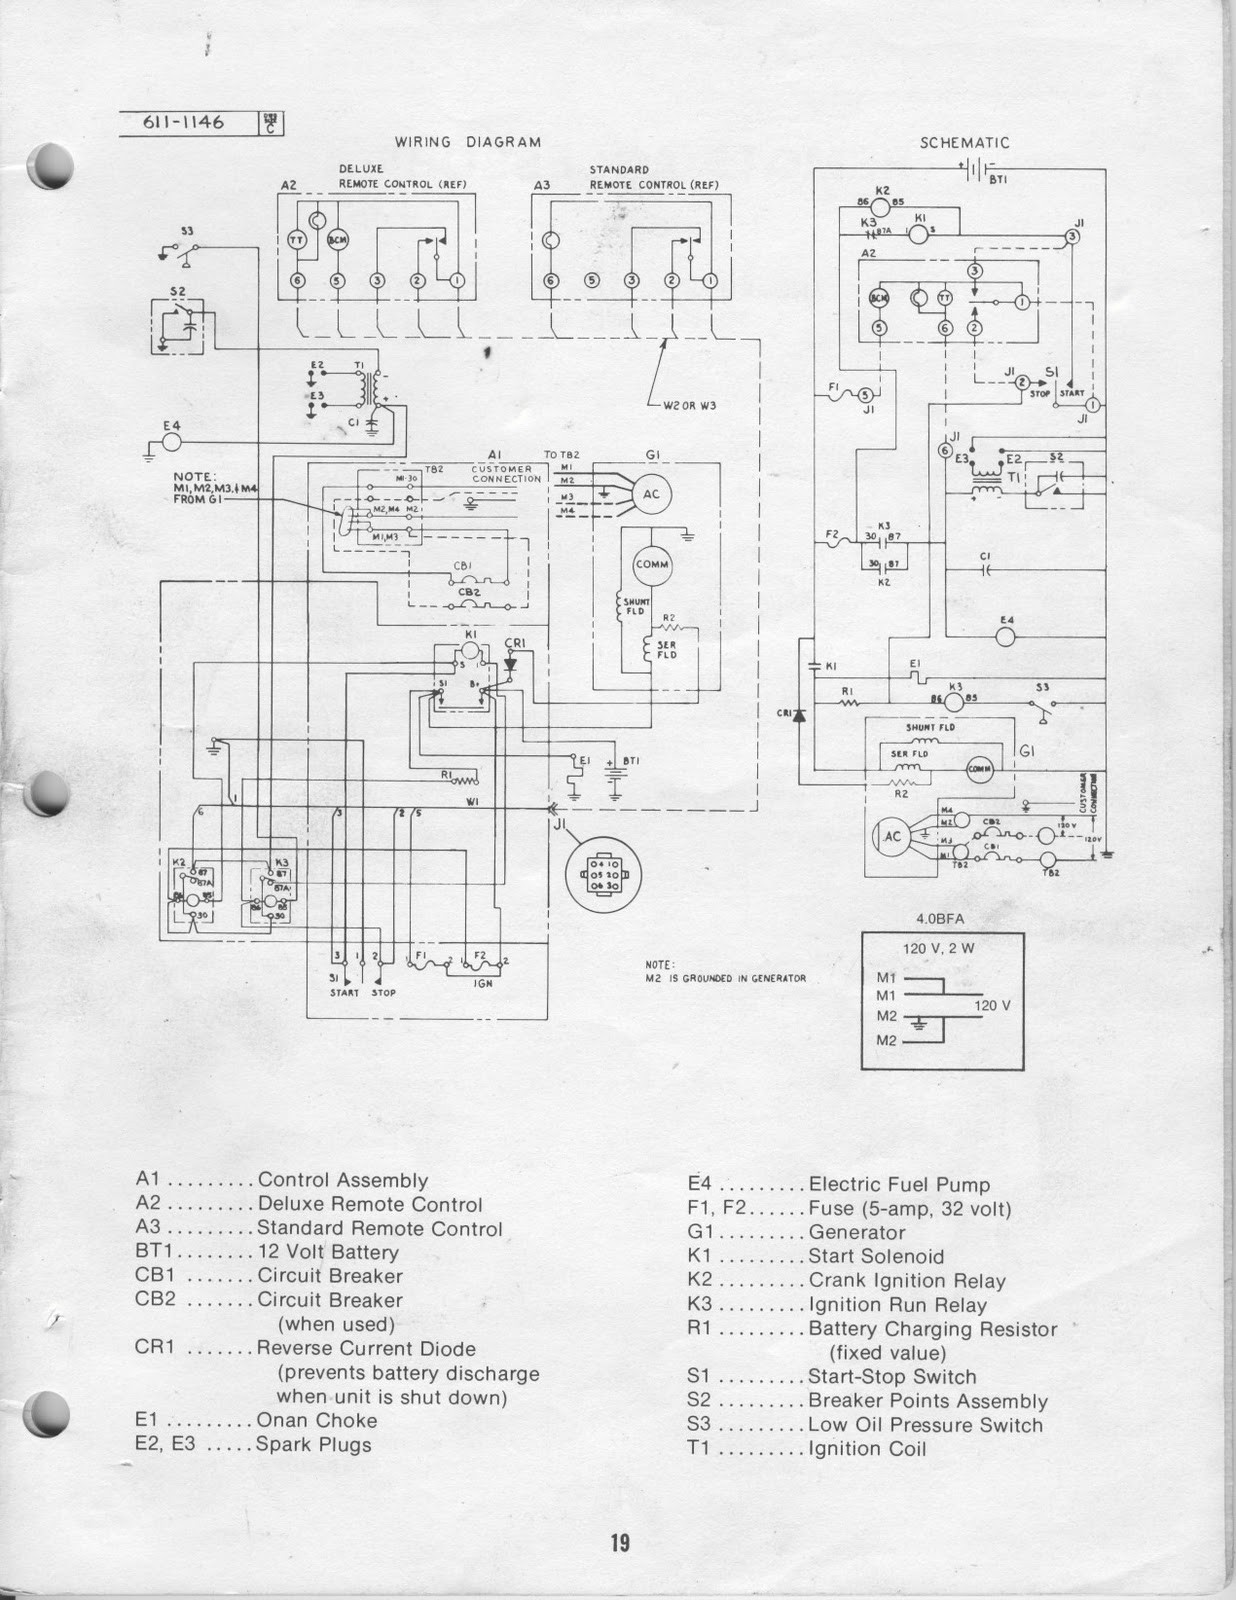 wiring diagram for onan generator 4500